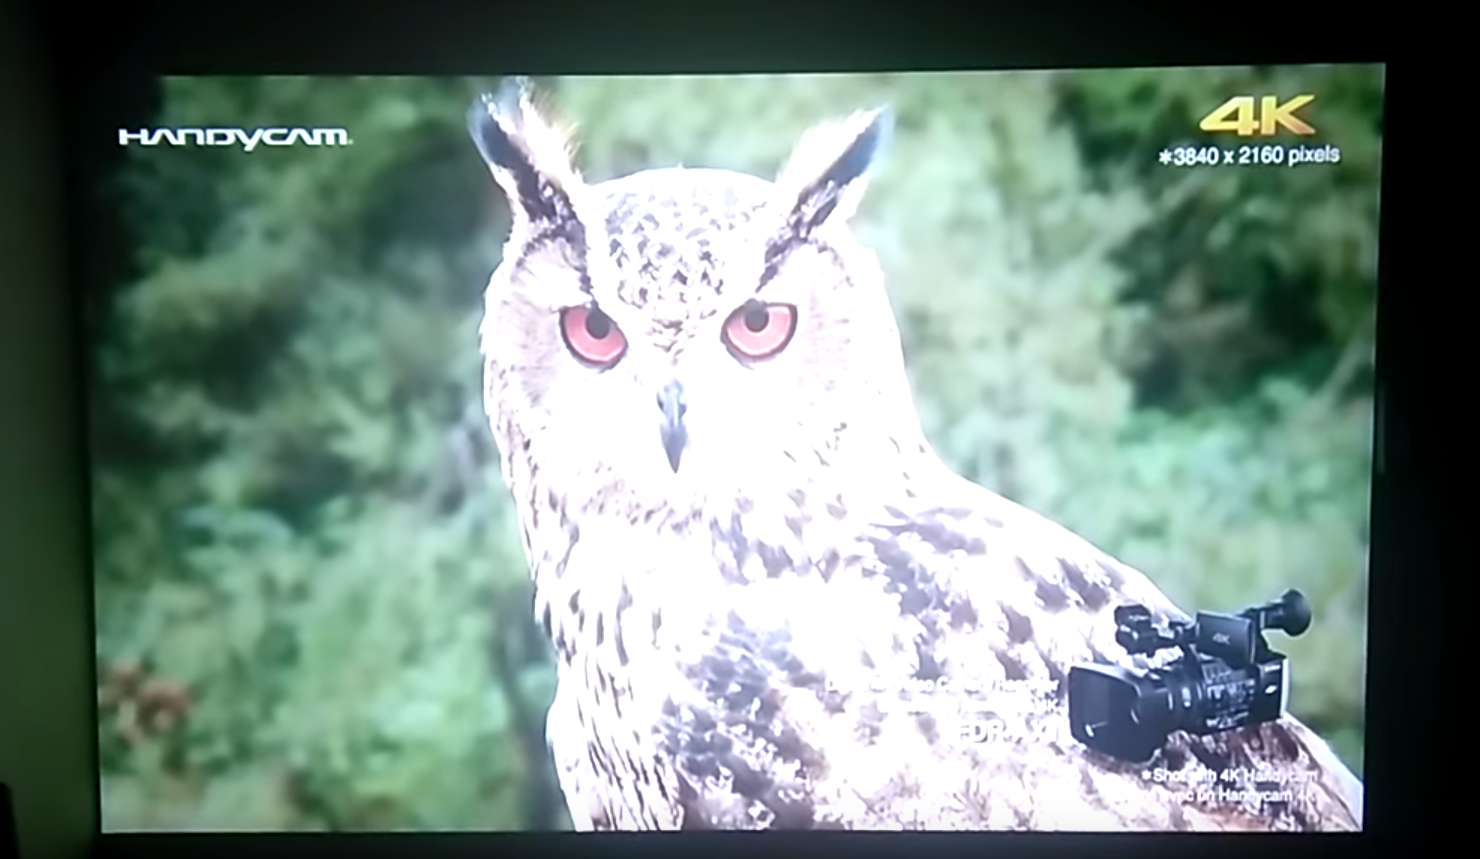 Excelvan CL720D; showing the picture quality of the projector; image of the owl and trees behind it.